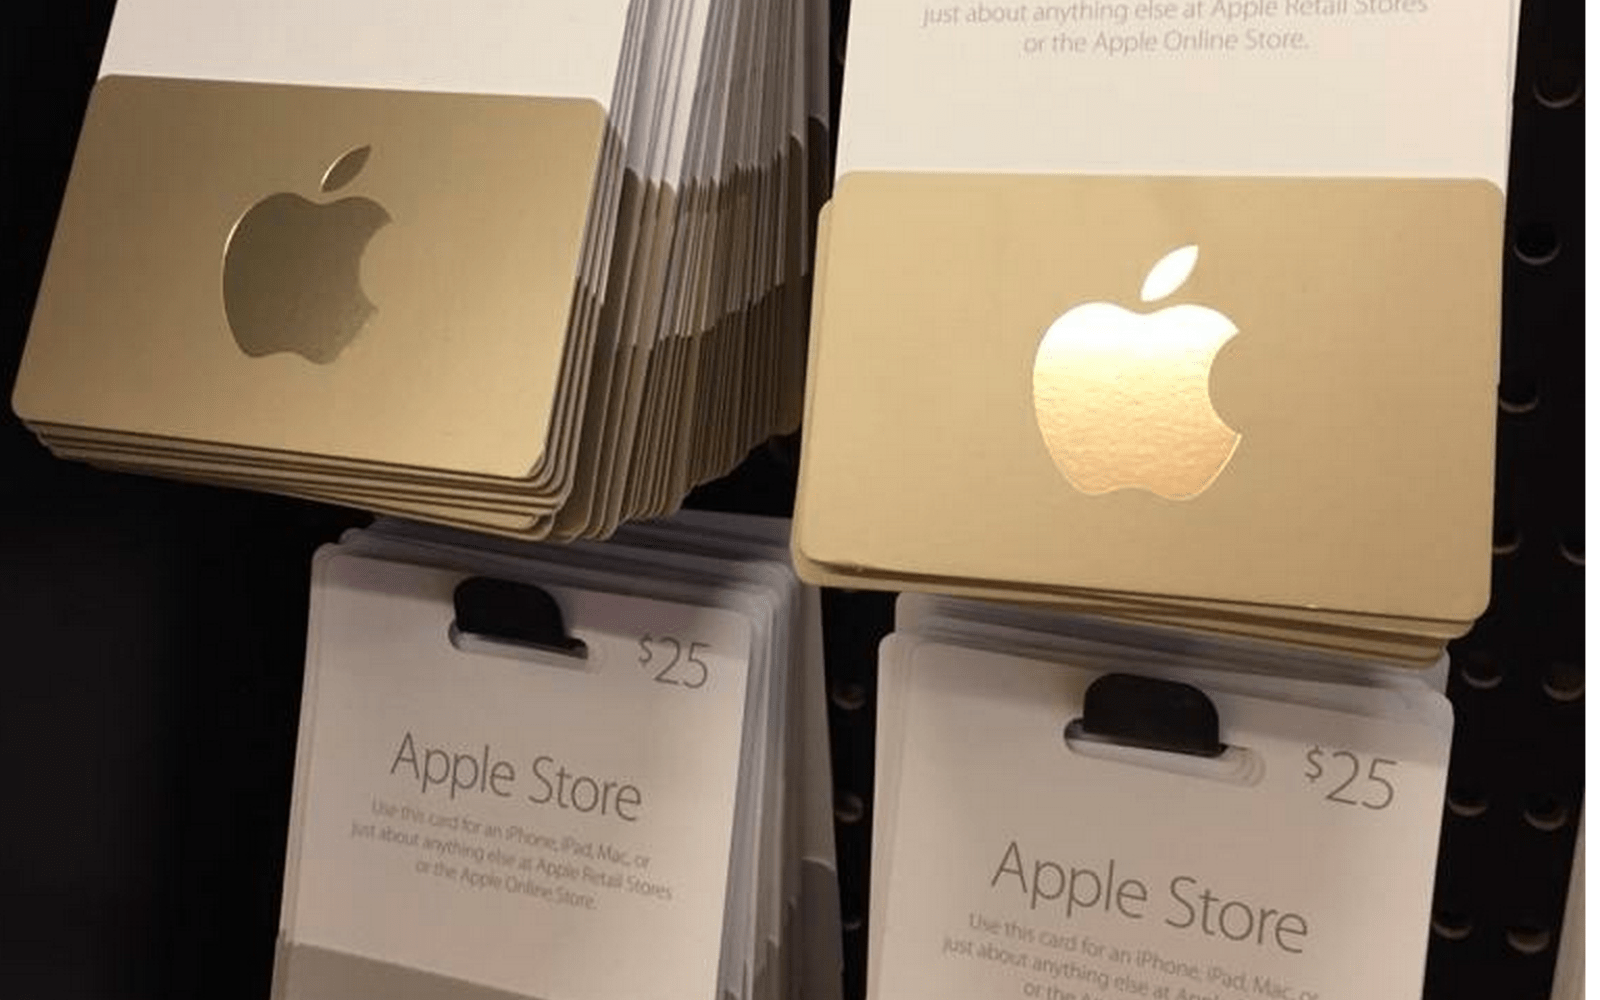 Apple Retail Gift Cards Arrive In Third Party Stores For The